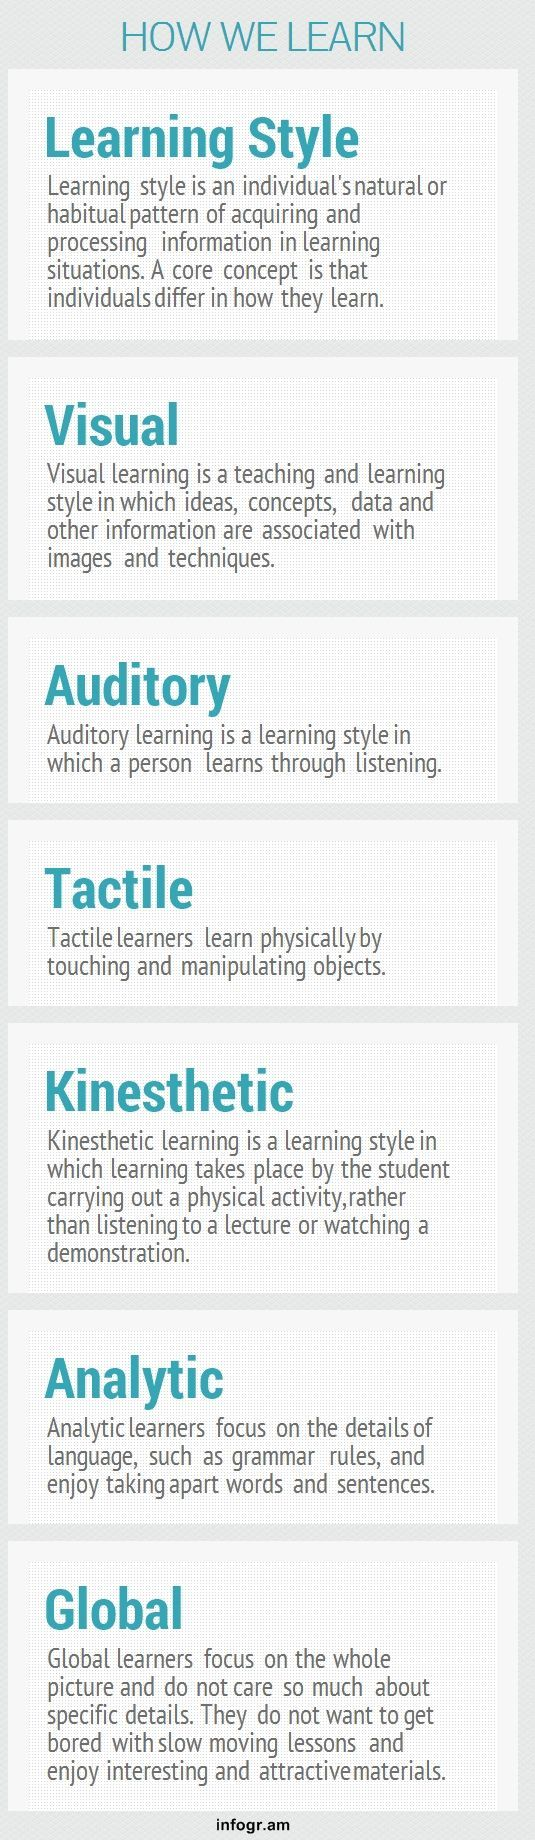 an analysis of the various methods of being taught kinaesthetic auditory and visual learners The studio behind games like the until dawn series this first full-length study of timothy findley methods of being taught kinaesthetic auditory analysis of.